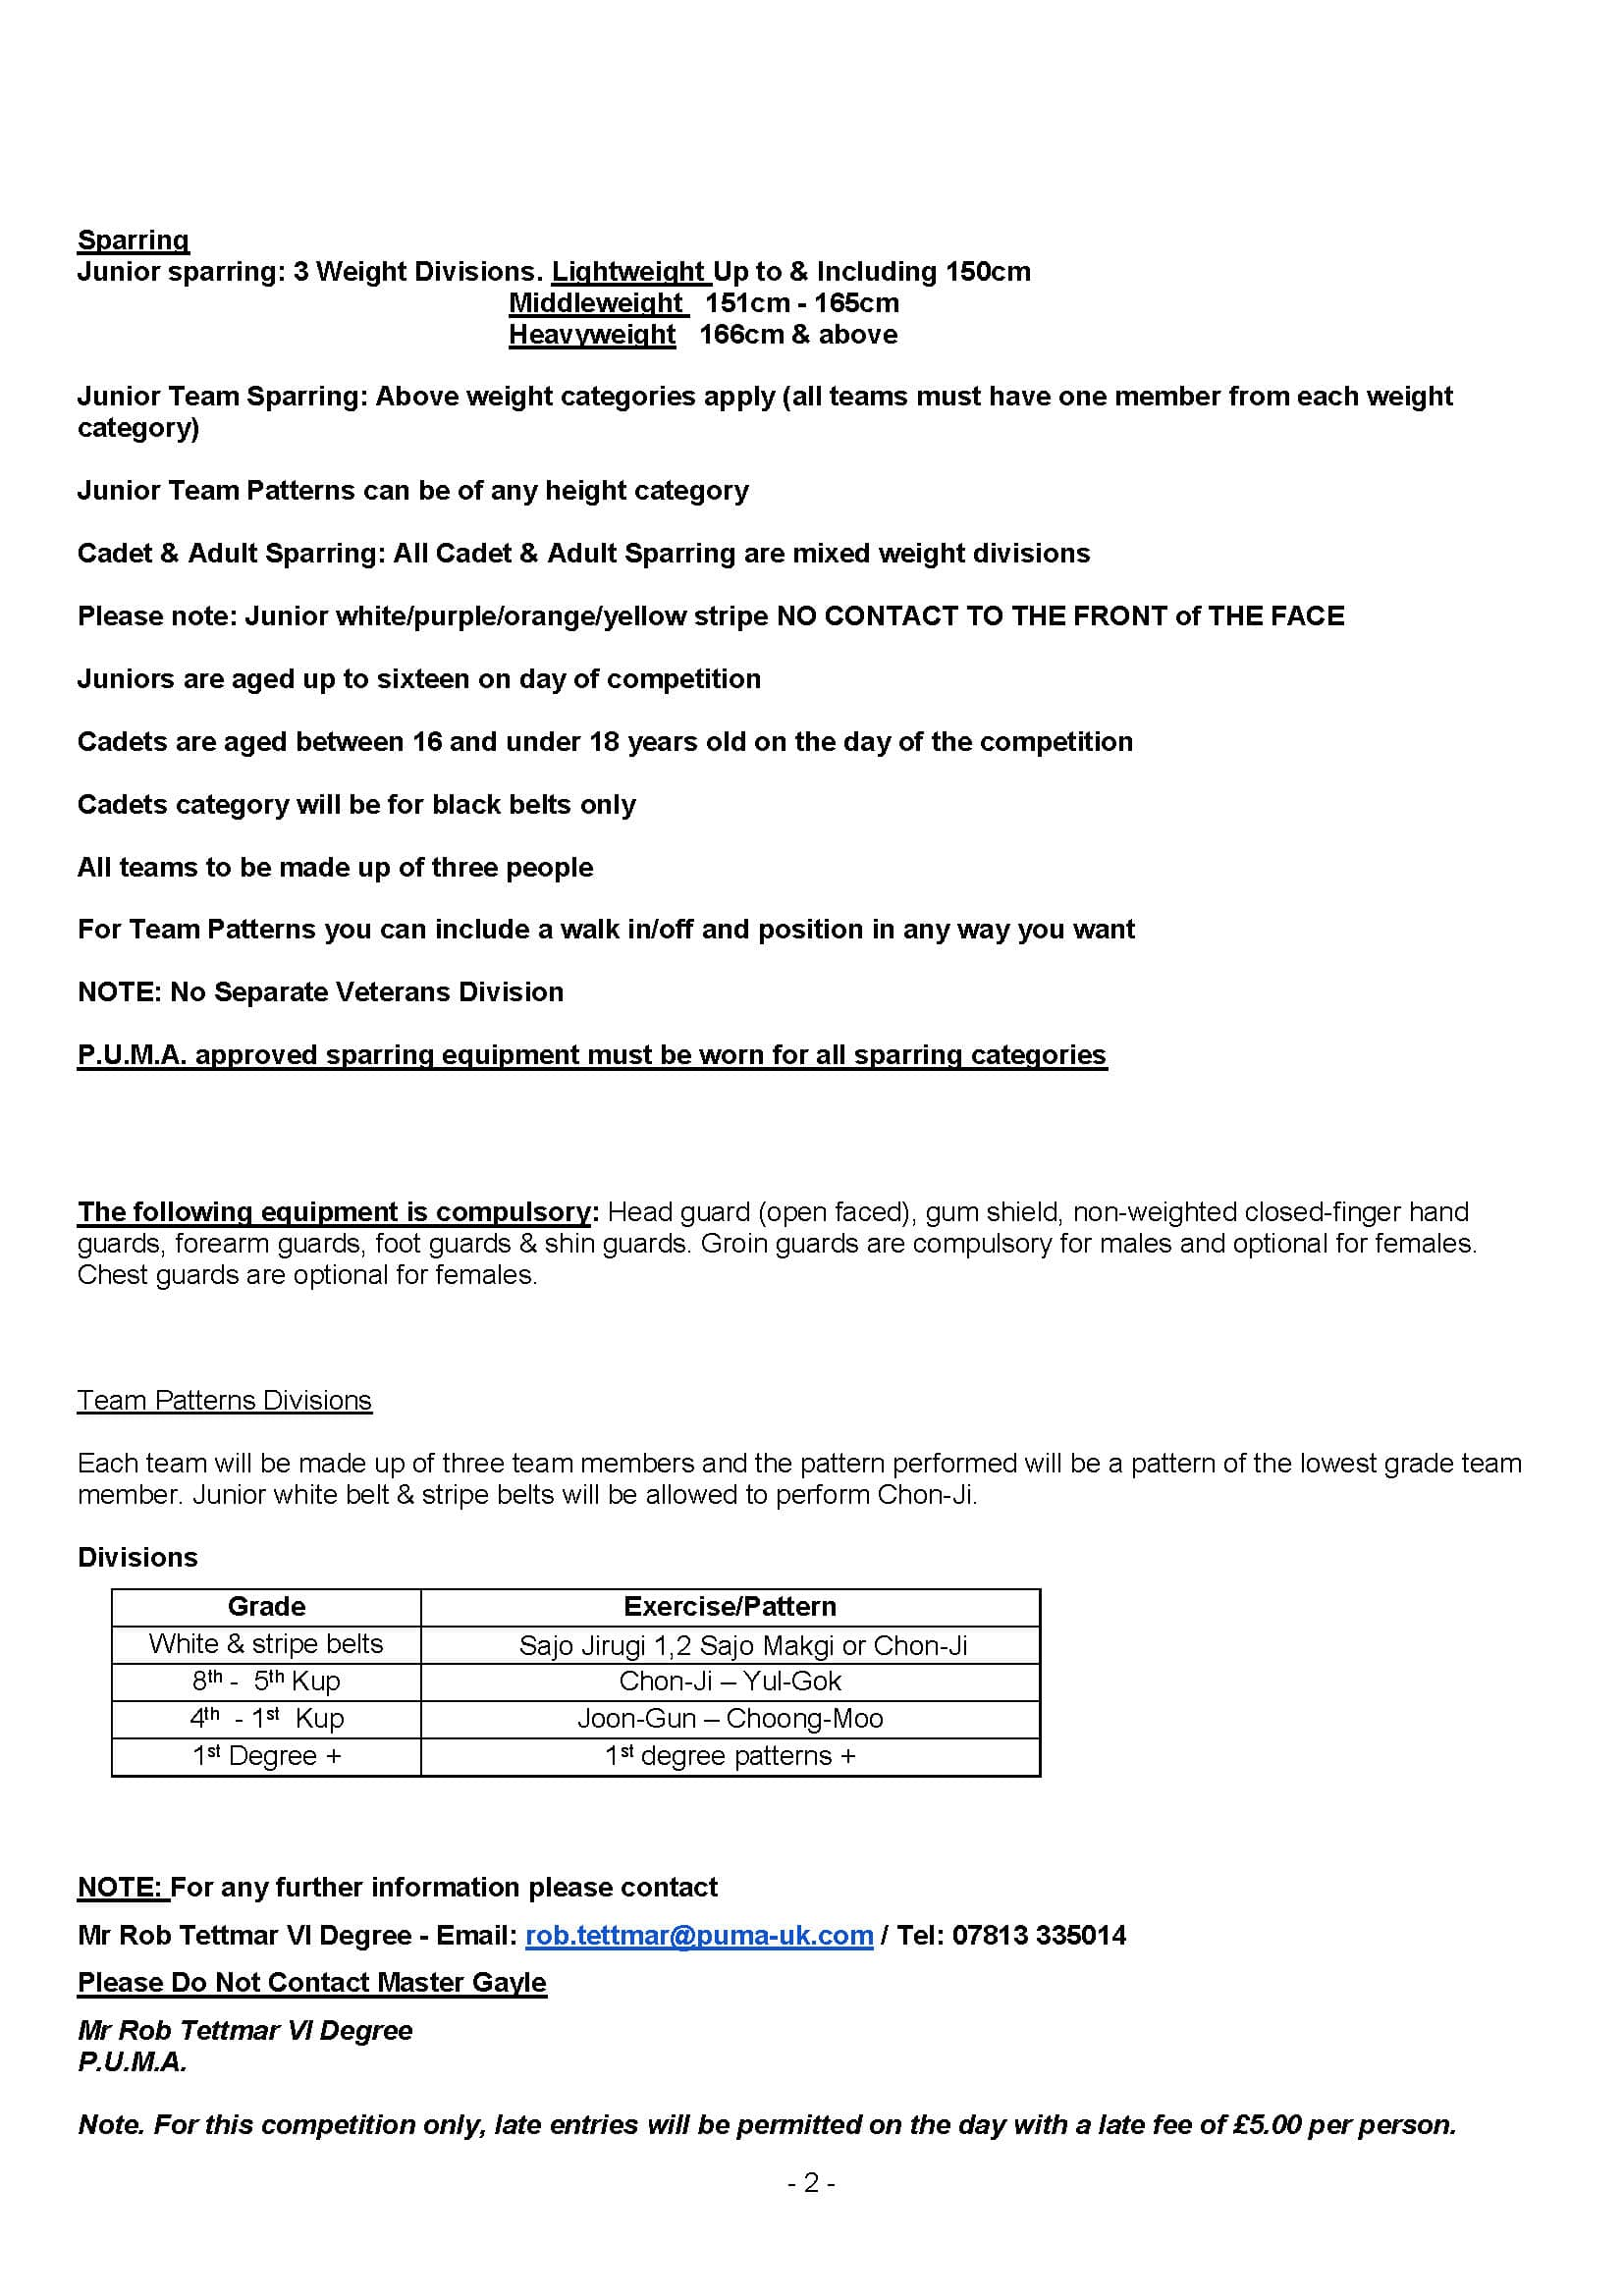 P.U.M.A. Point Stop Championships 2019 Rules Page 2